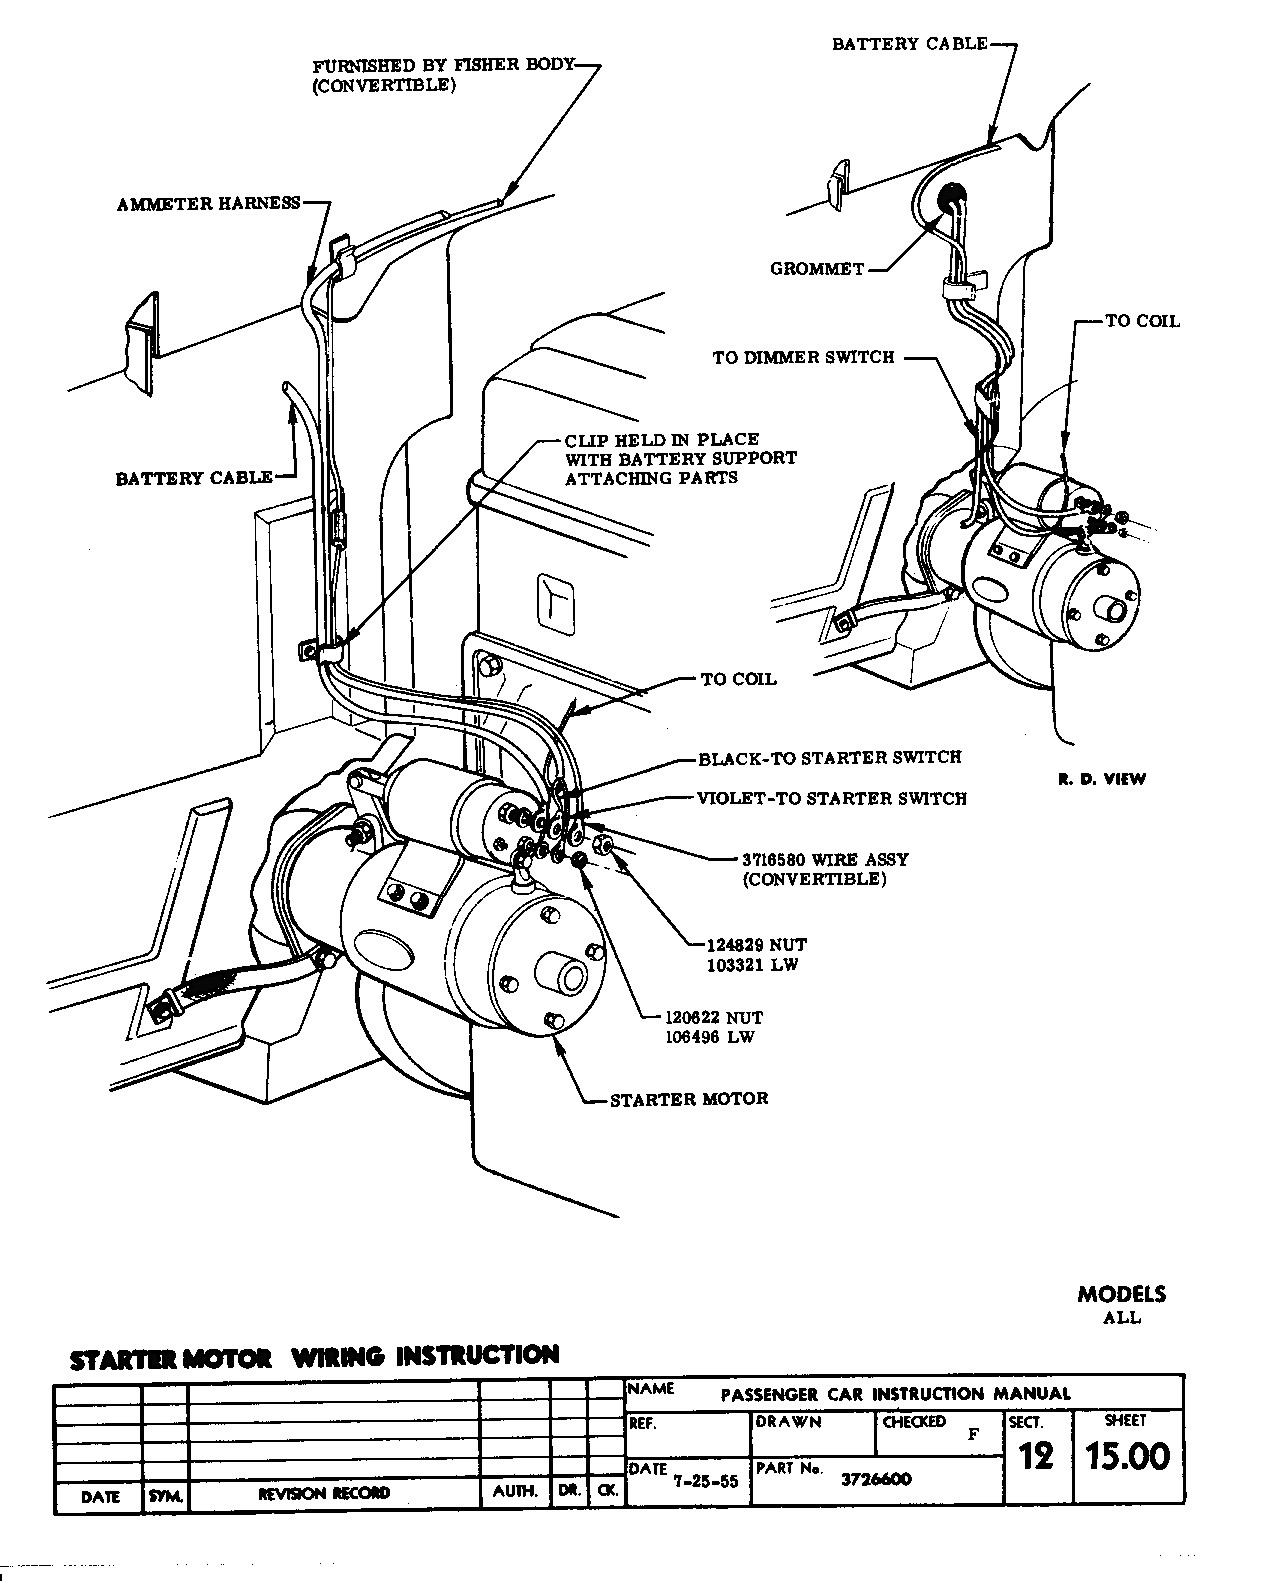 Marine Starter Solenoid Wiring Diagram New Chevy Hei Of 10 8 - Hei Wiring Diagram